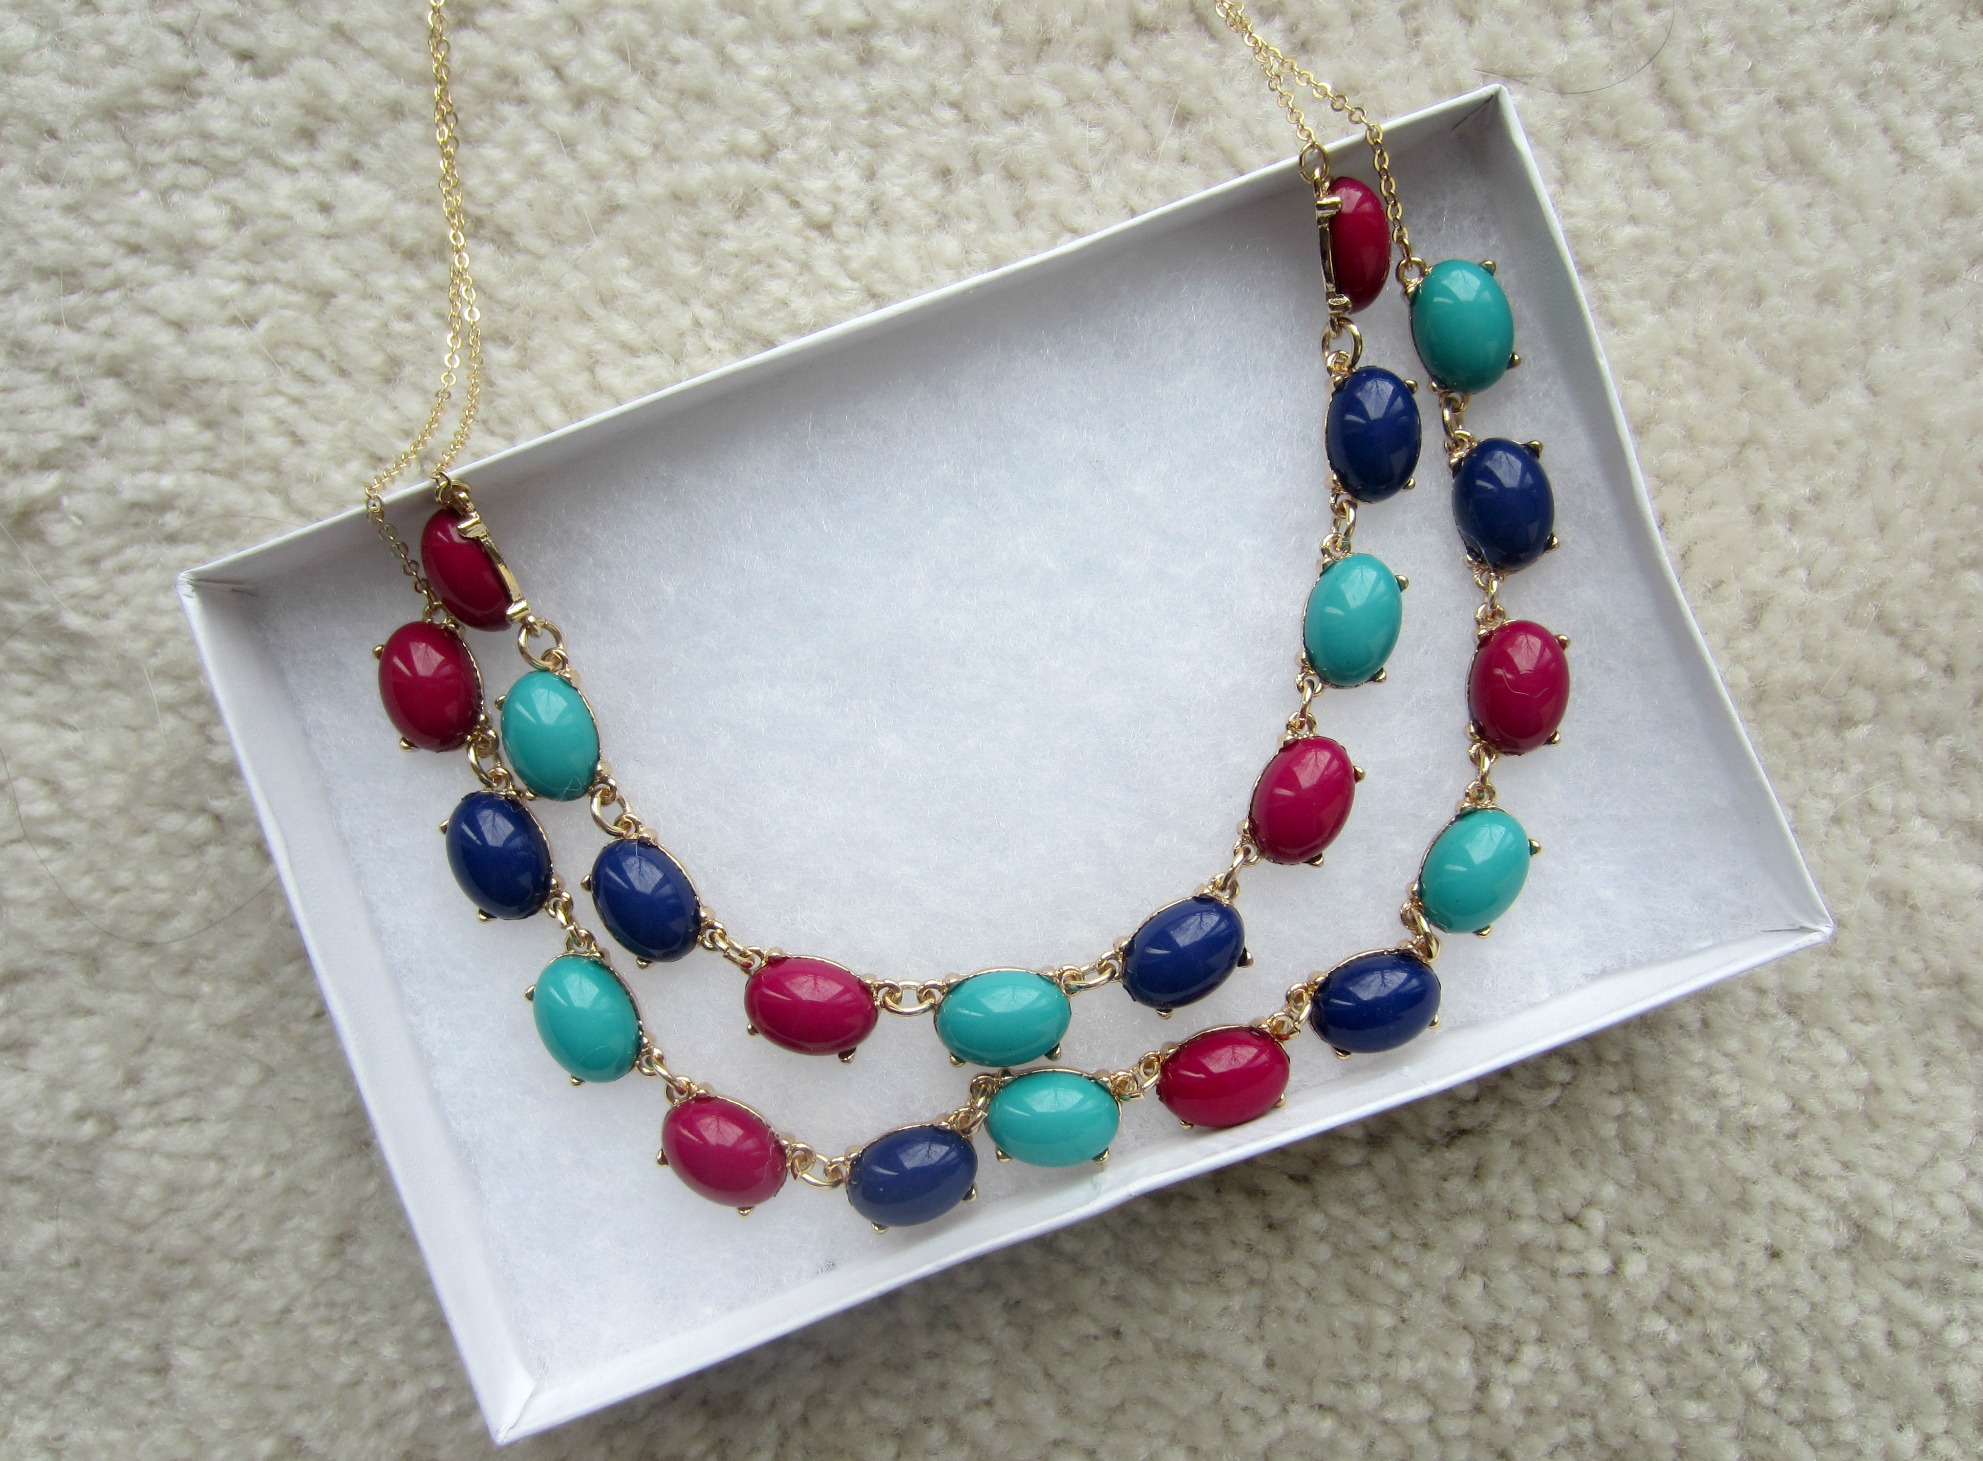 stitch fix bay to baubles layered gem necklace